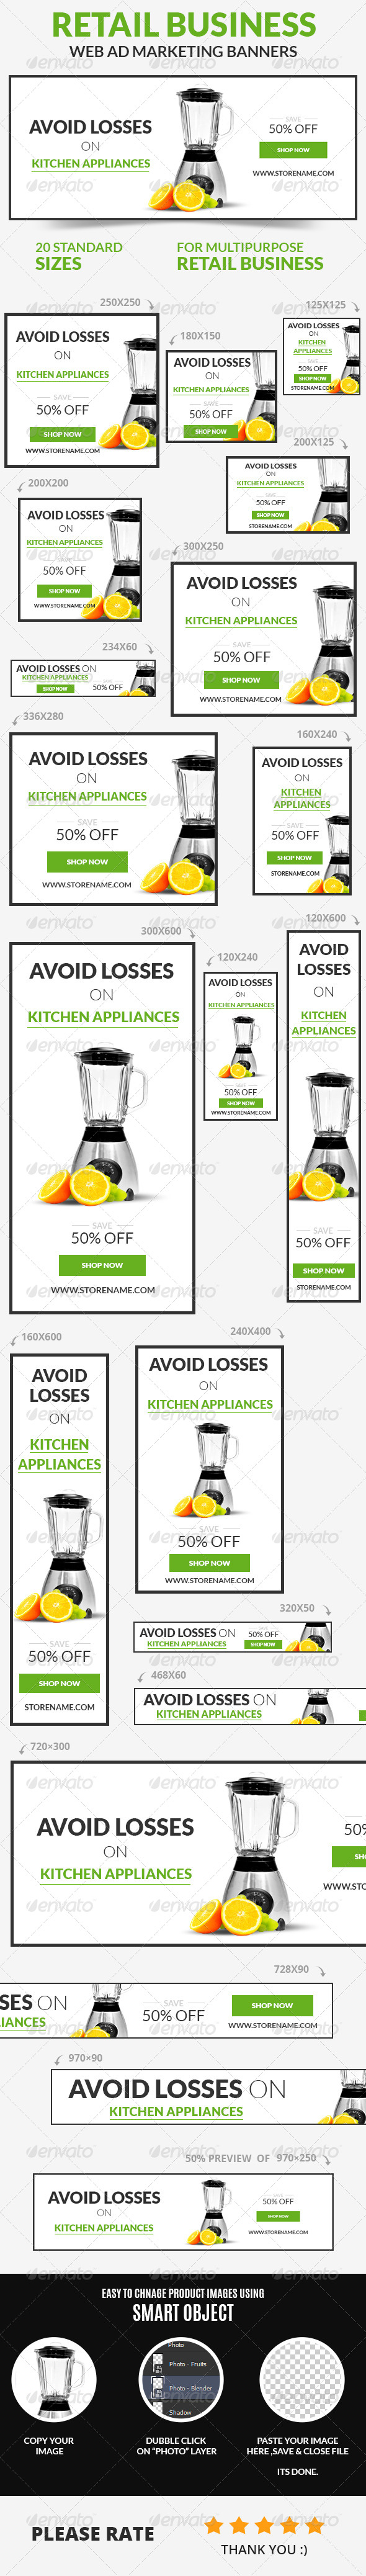 GraphicRiver Retail Business Web Ad Marketing Banners 7401293